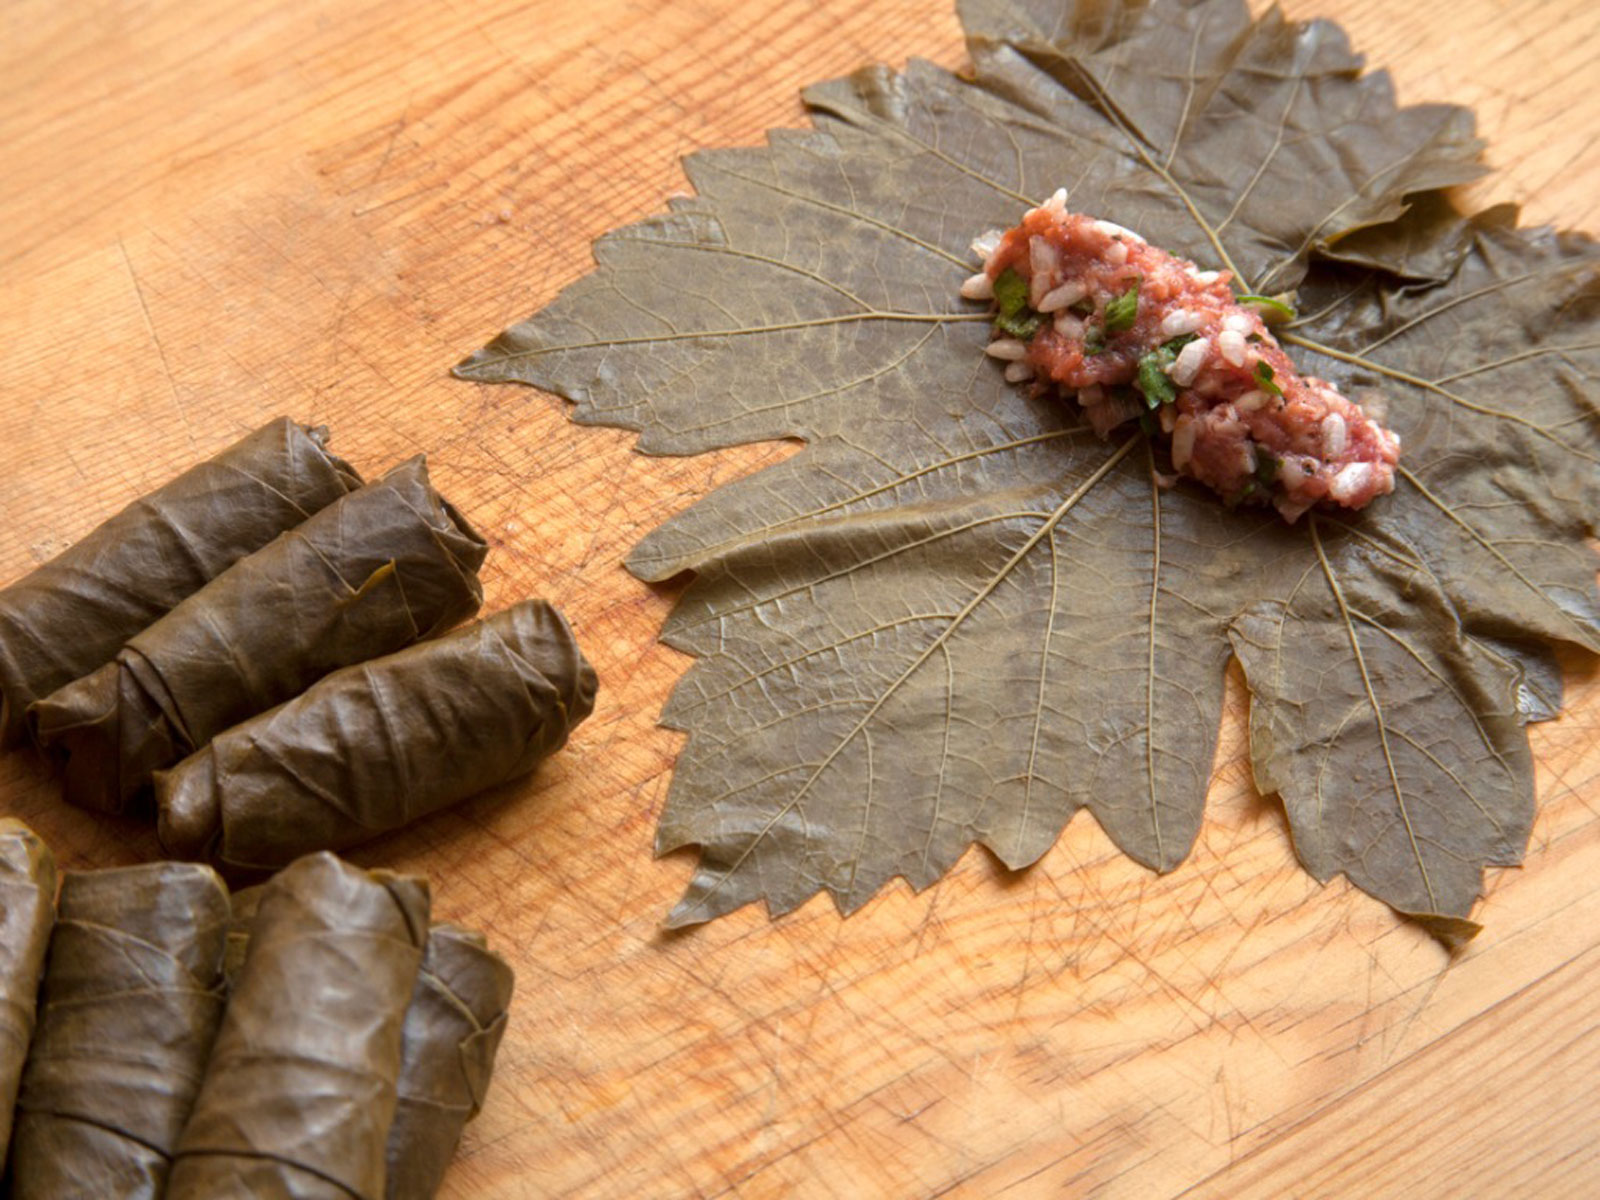 Fresh Grape Leaf Uses Learn About Picking Grape Leaves To Eat